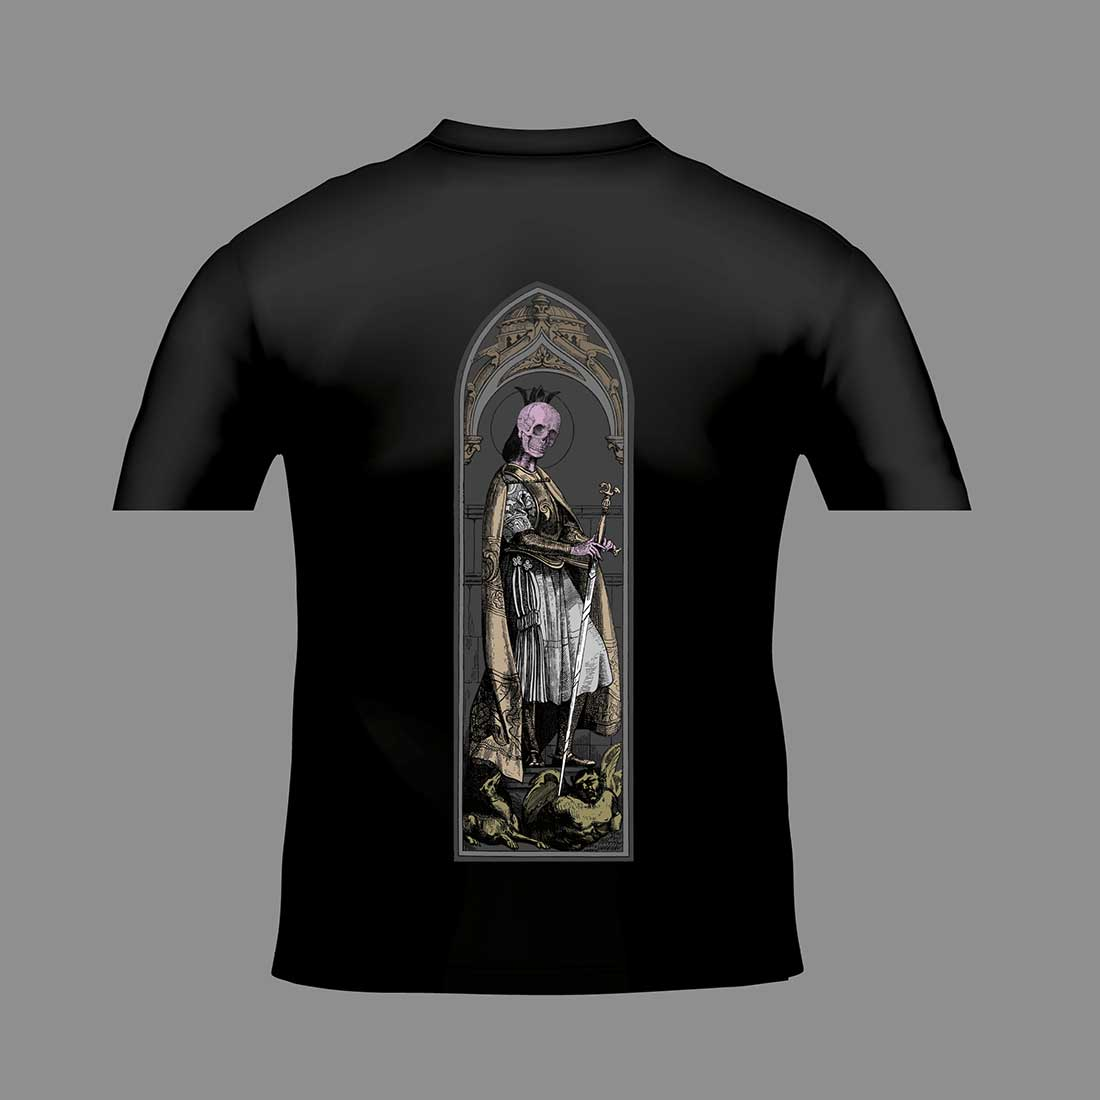 Black queen t shirt - Home T Shirts Queen Is Dead Exclusive T Shirt